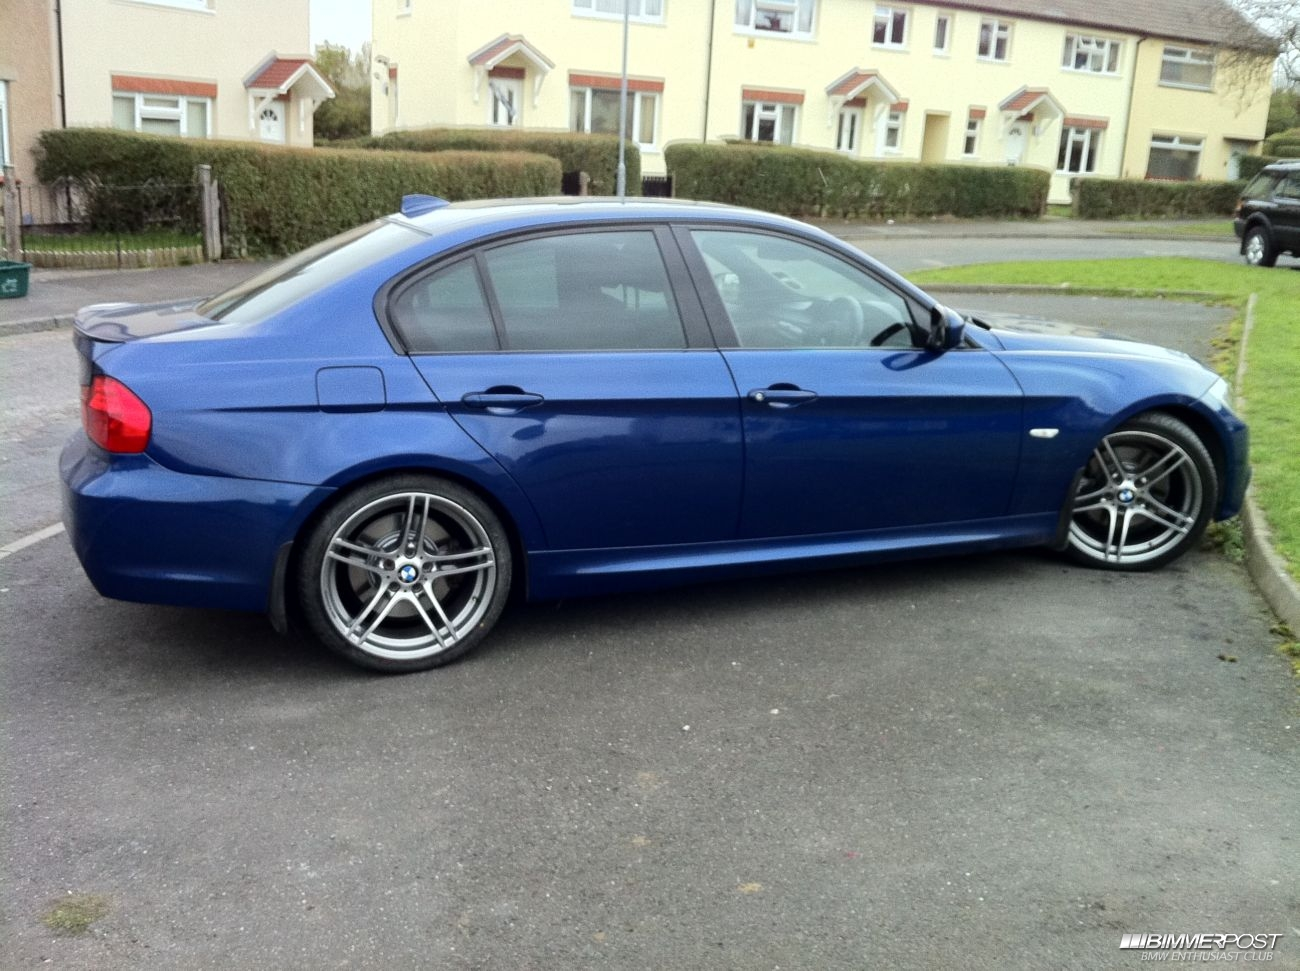 Lemans 330d S 2006 Bmw 330d M Sport Bimmerpost Garage